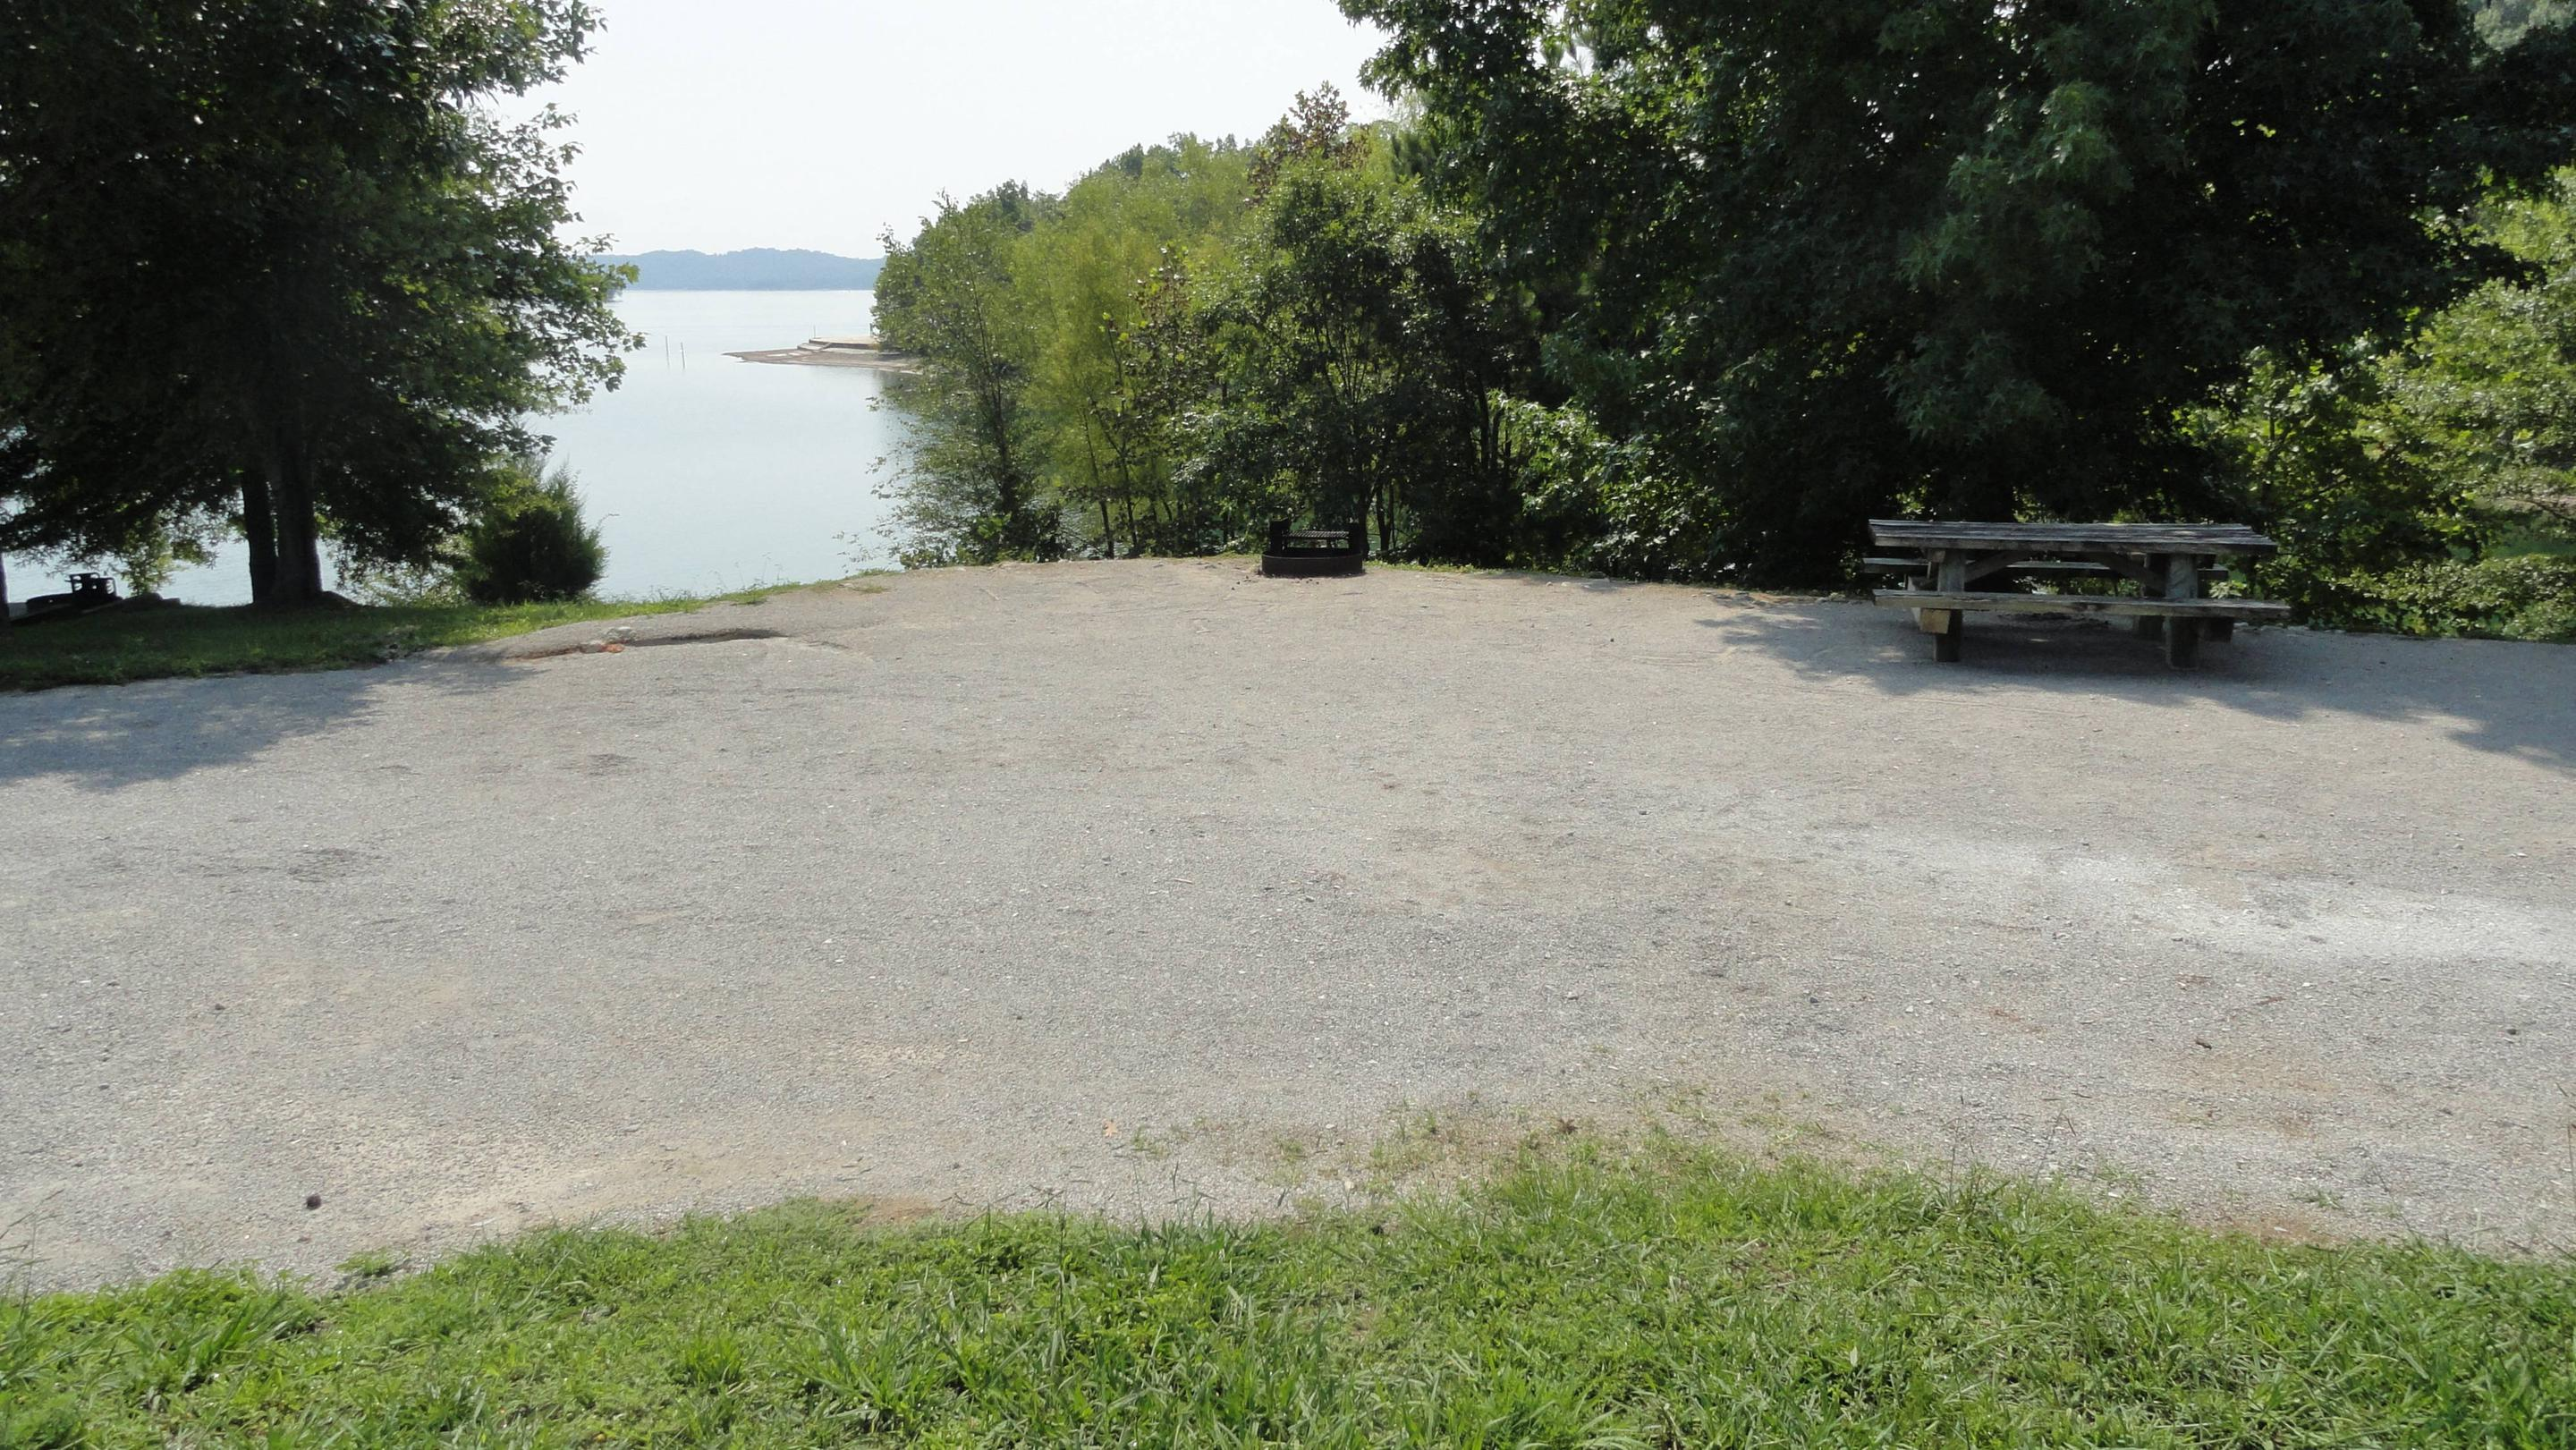 LILLYDALE CAMPGROUND SITE # 16